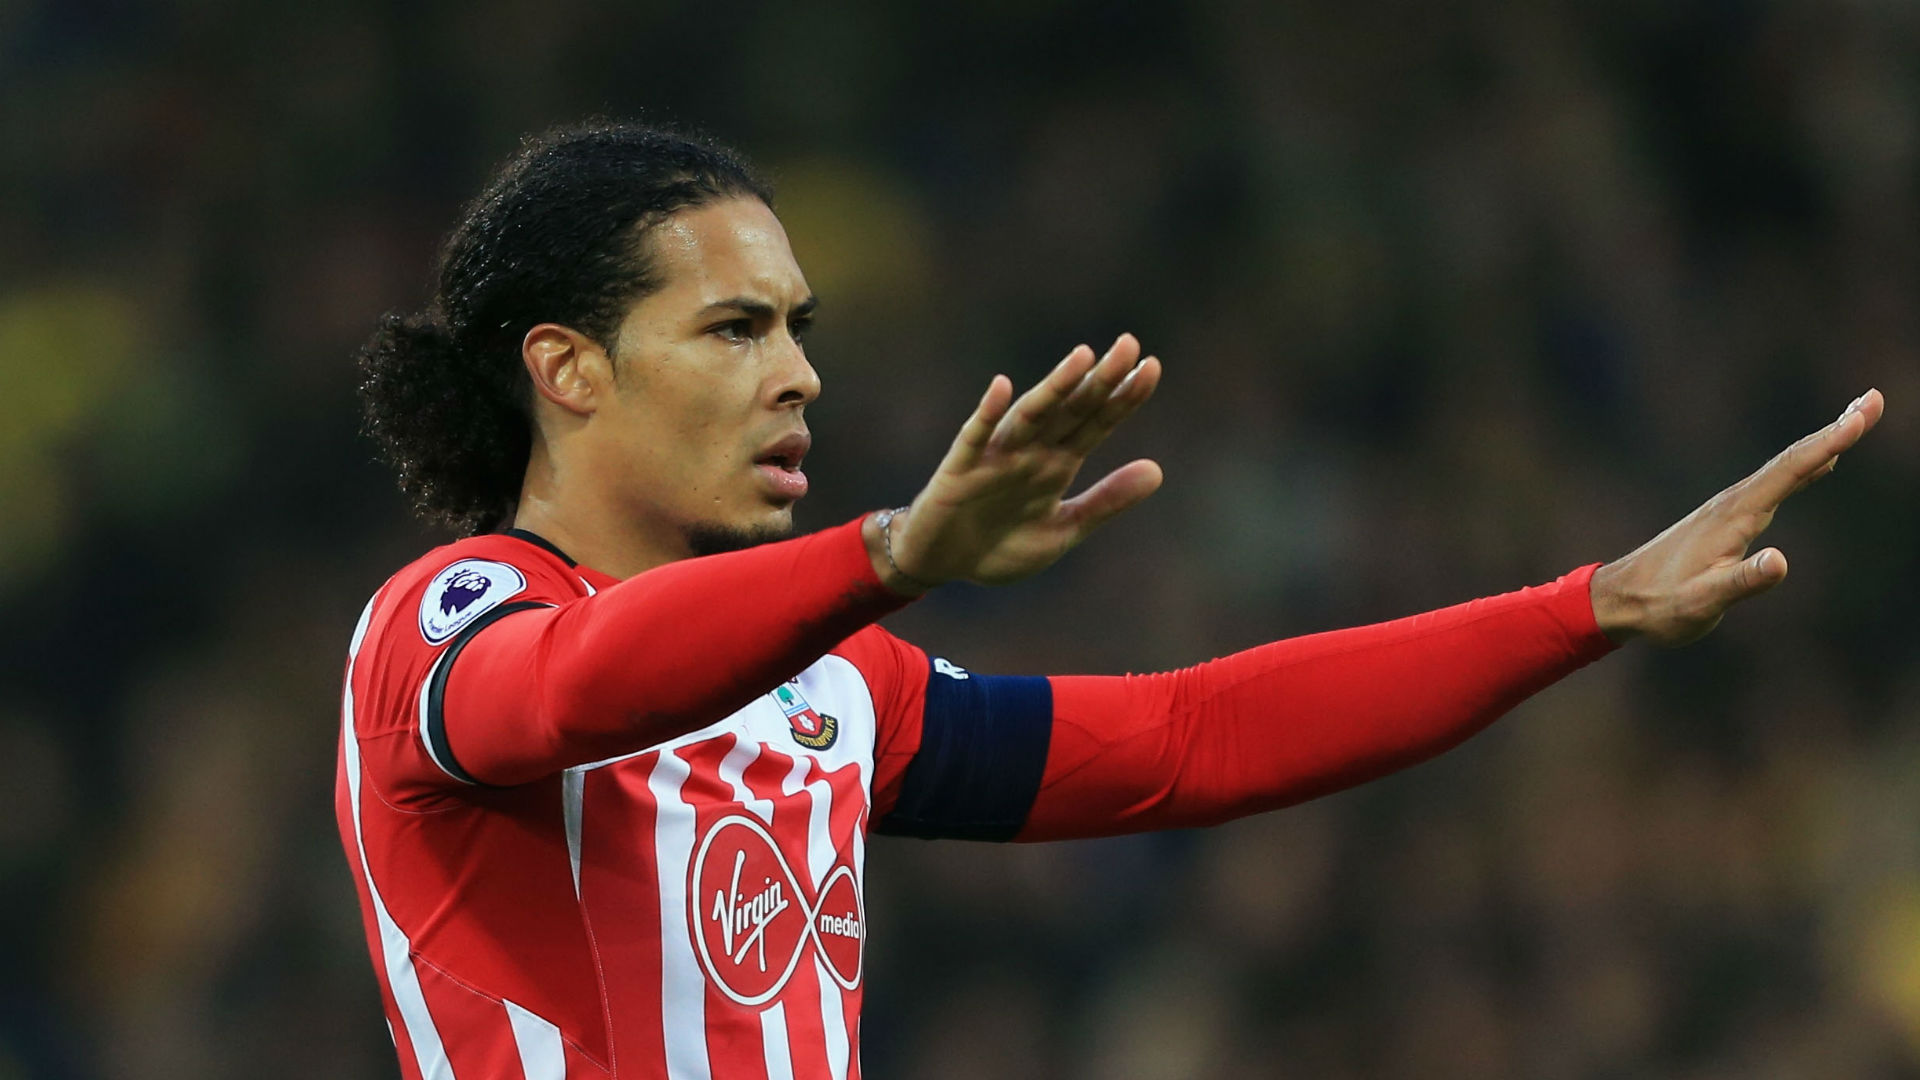 Chelsea target Virgil van Dijk expresses desire to join Liverpool this summer